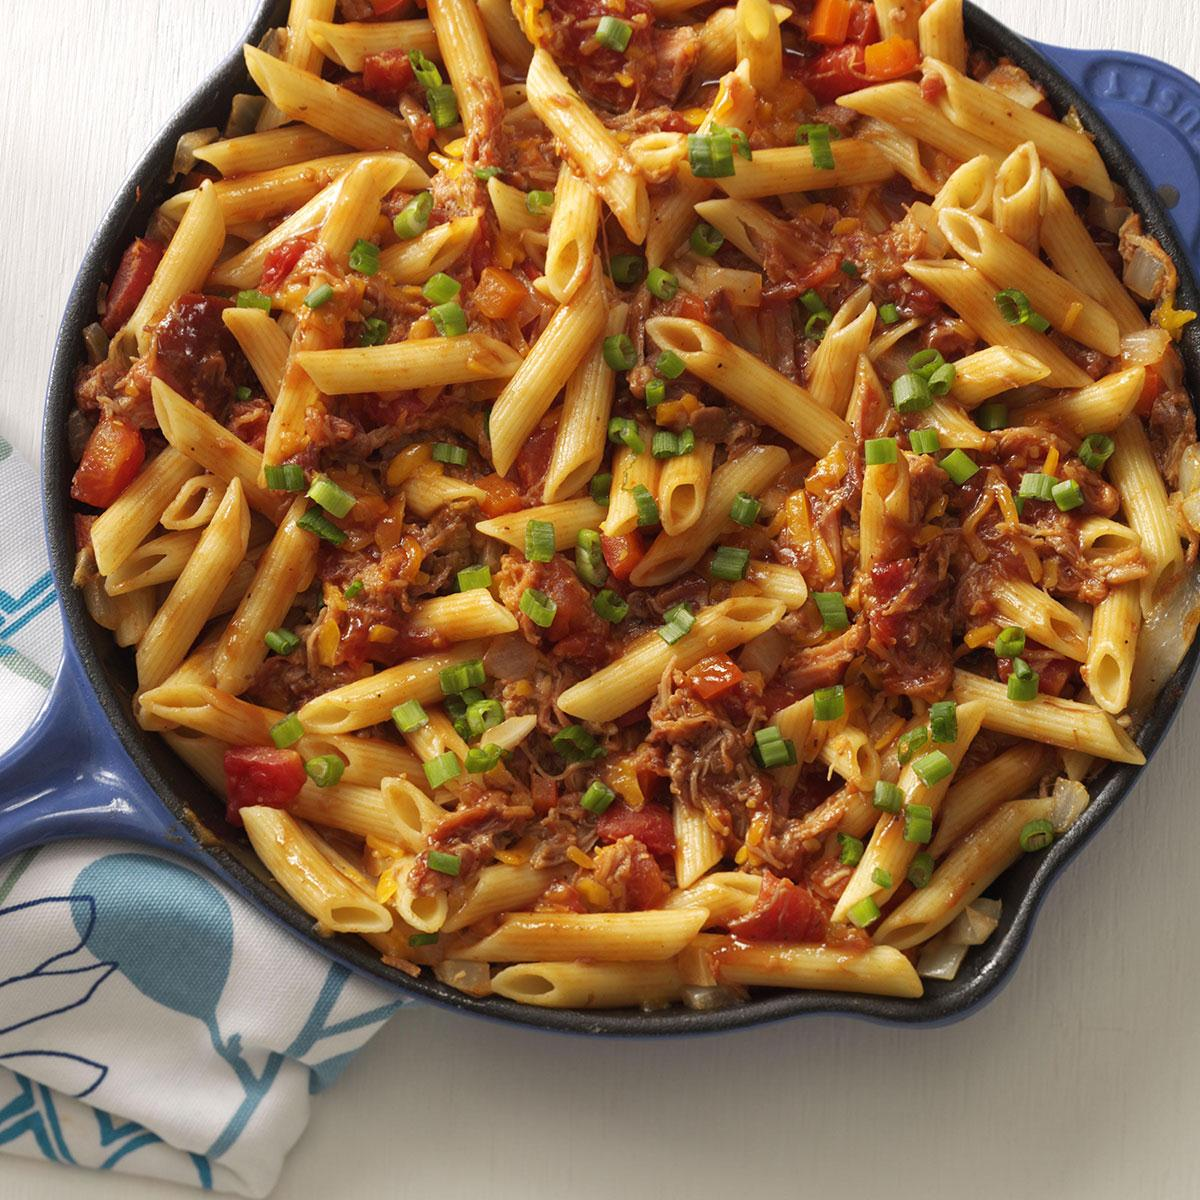 Barbecue Pork And Penne Skillet Recipe